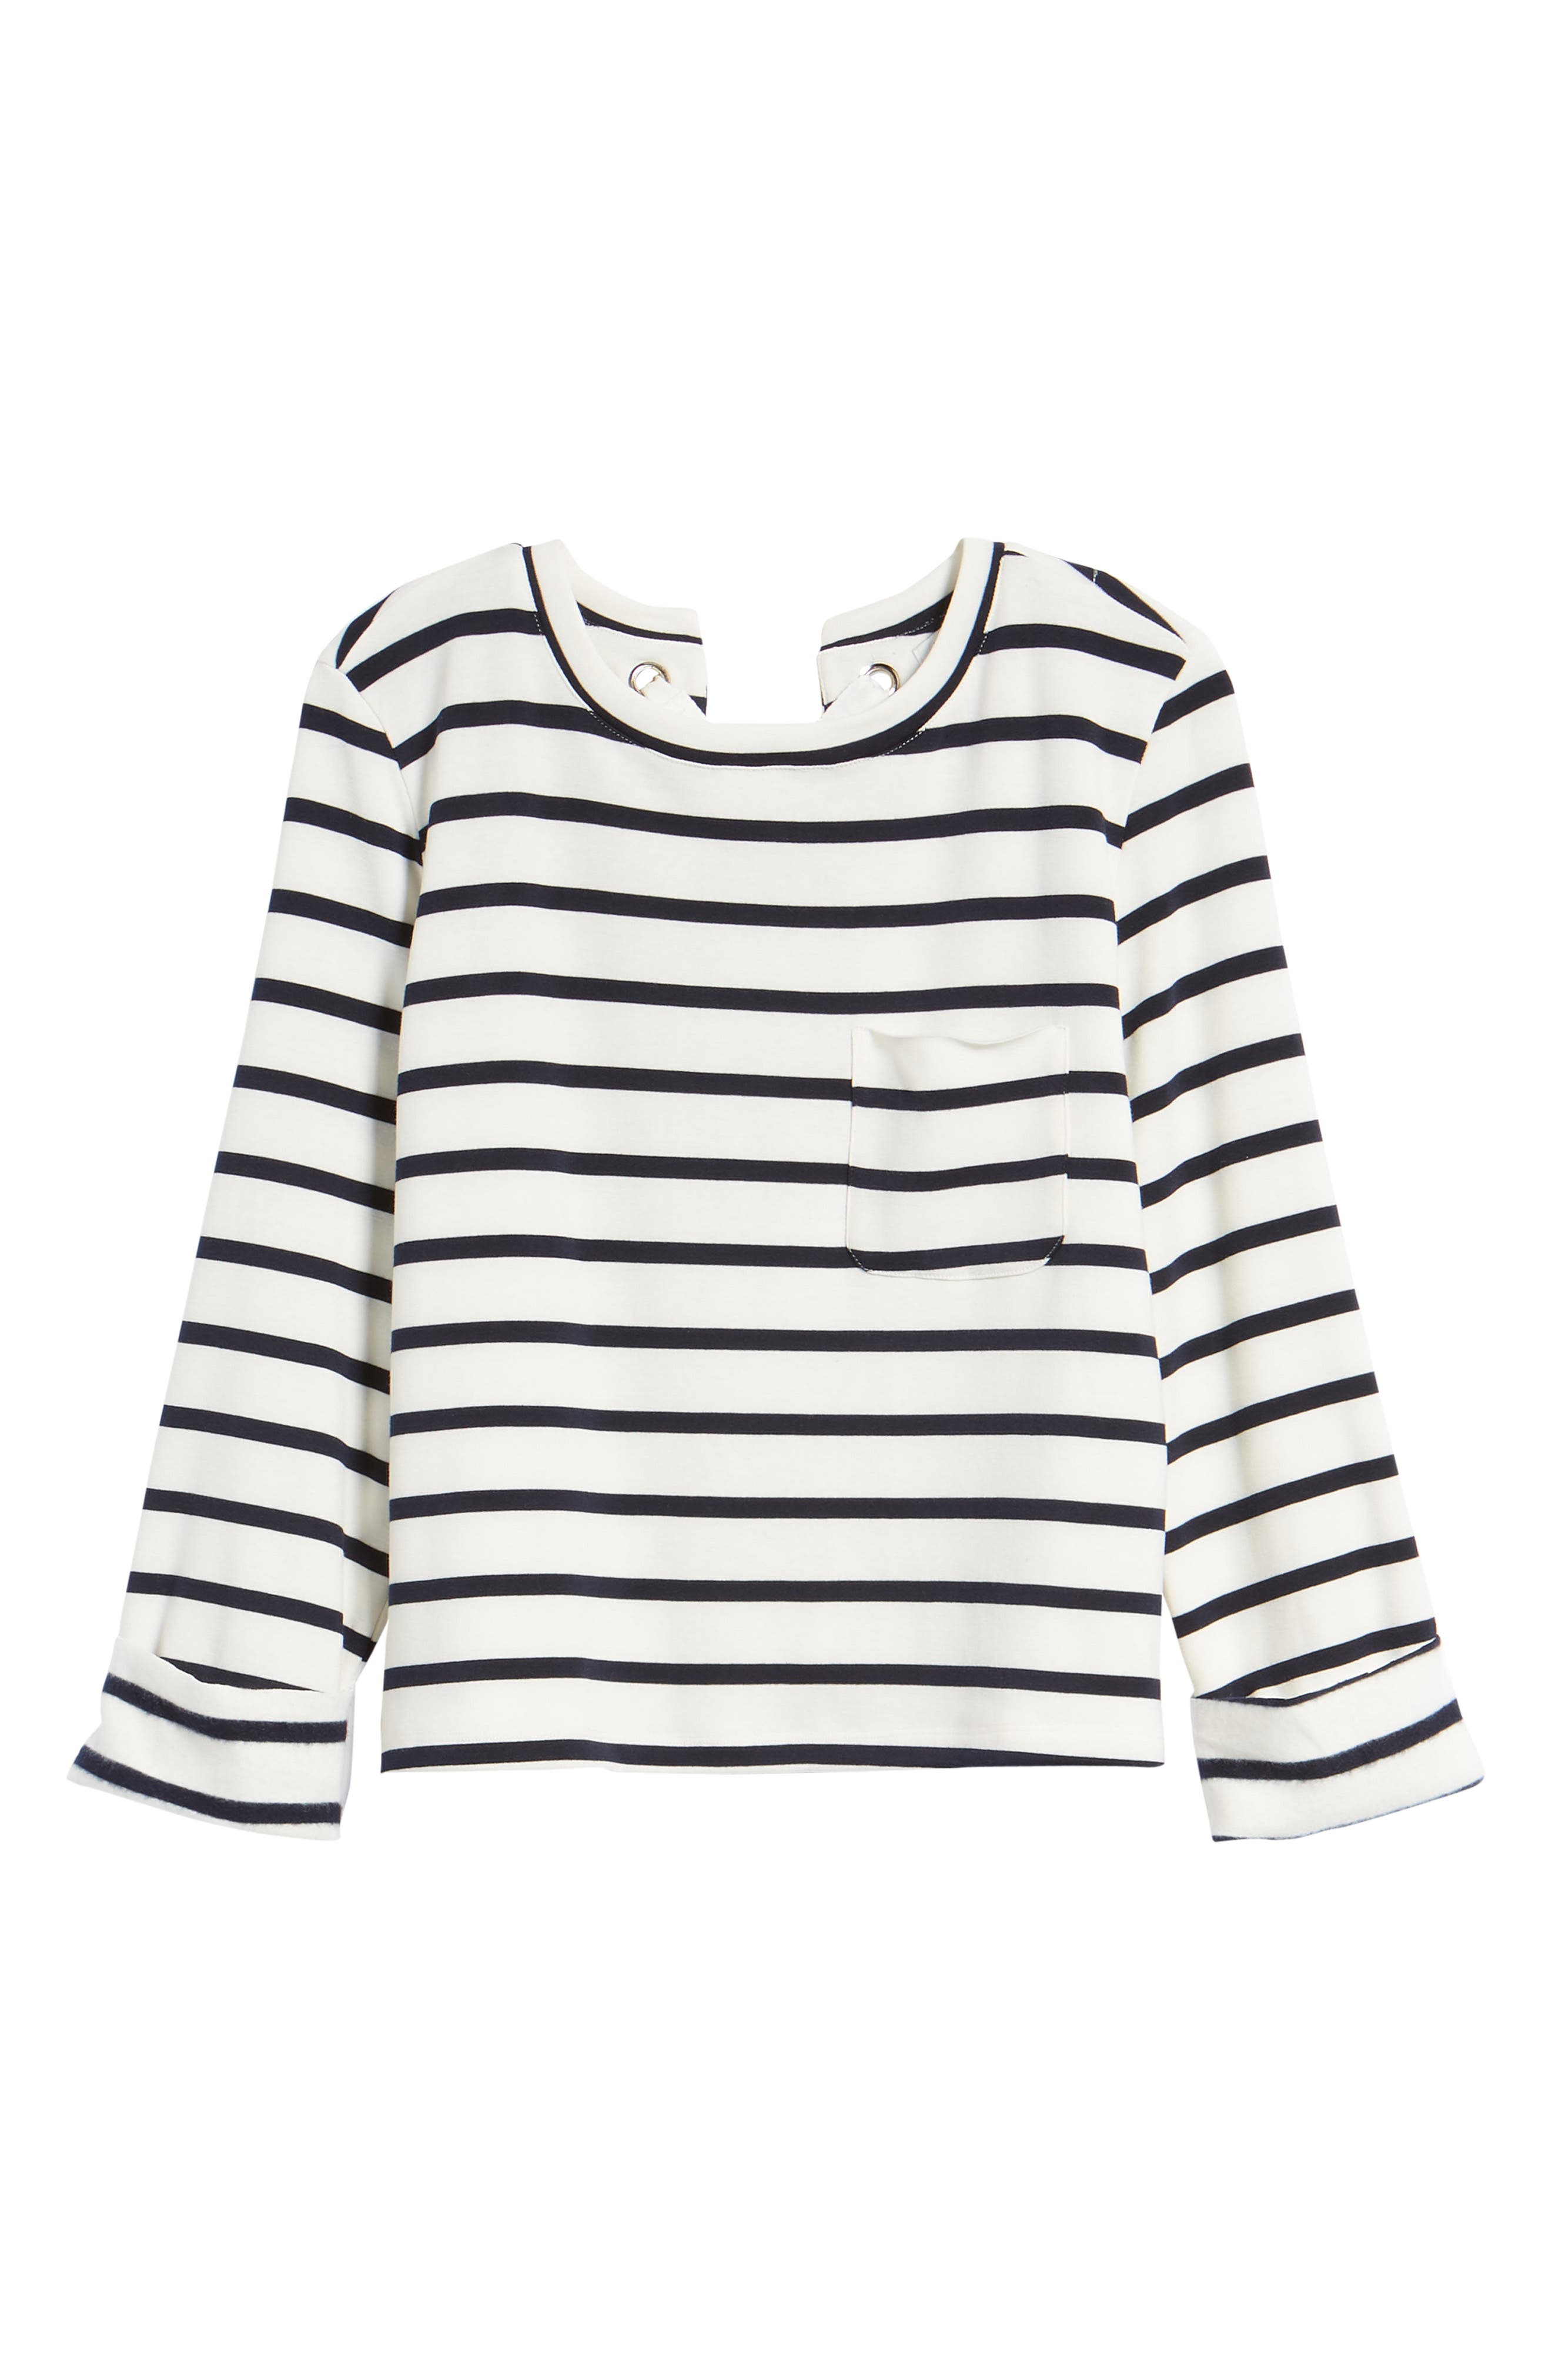 Bishop + Young Stripe Lace-Up Back Top,                             Alternate thumbnail 7, color,                             011